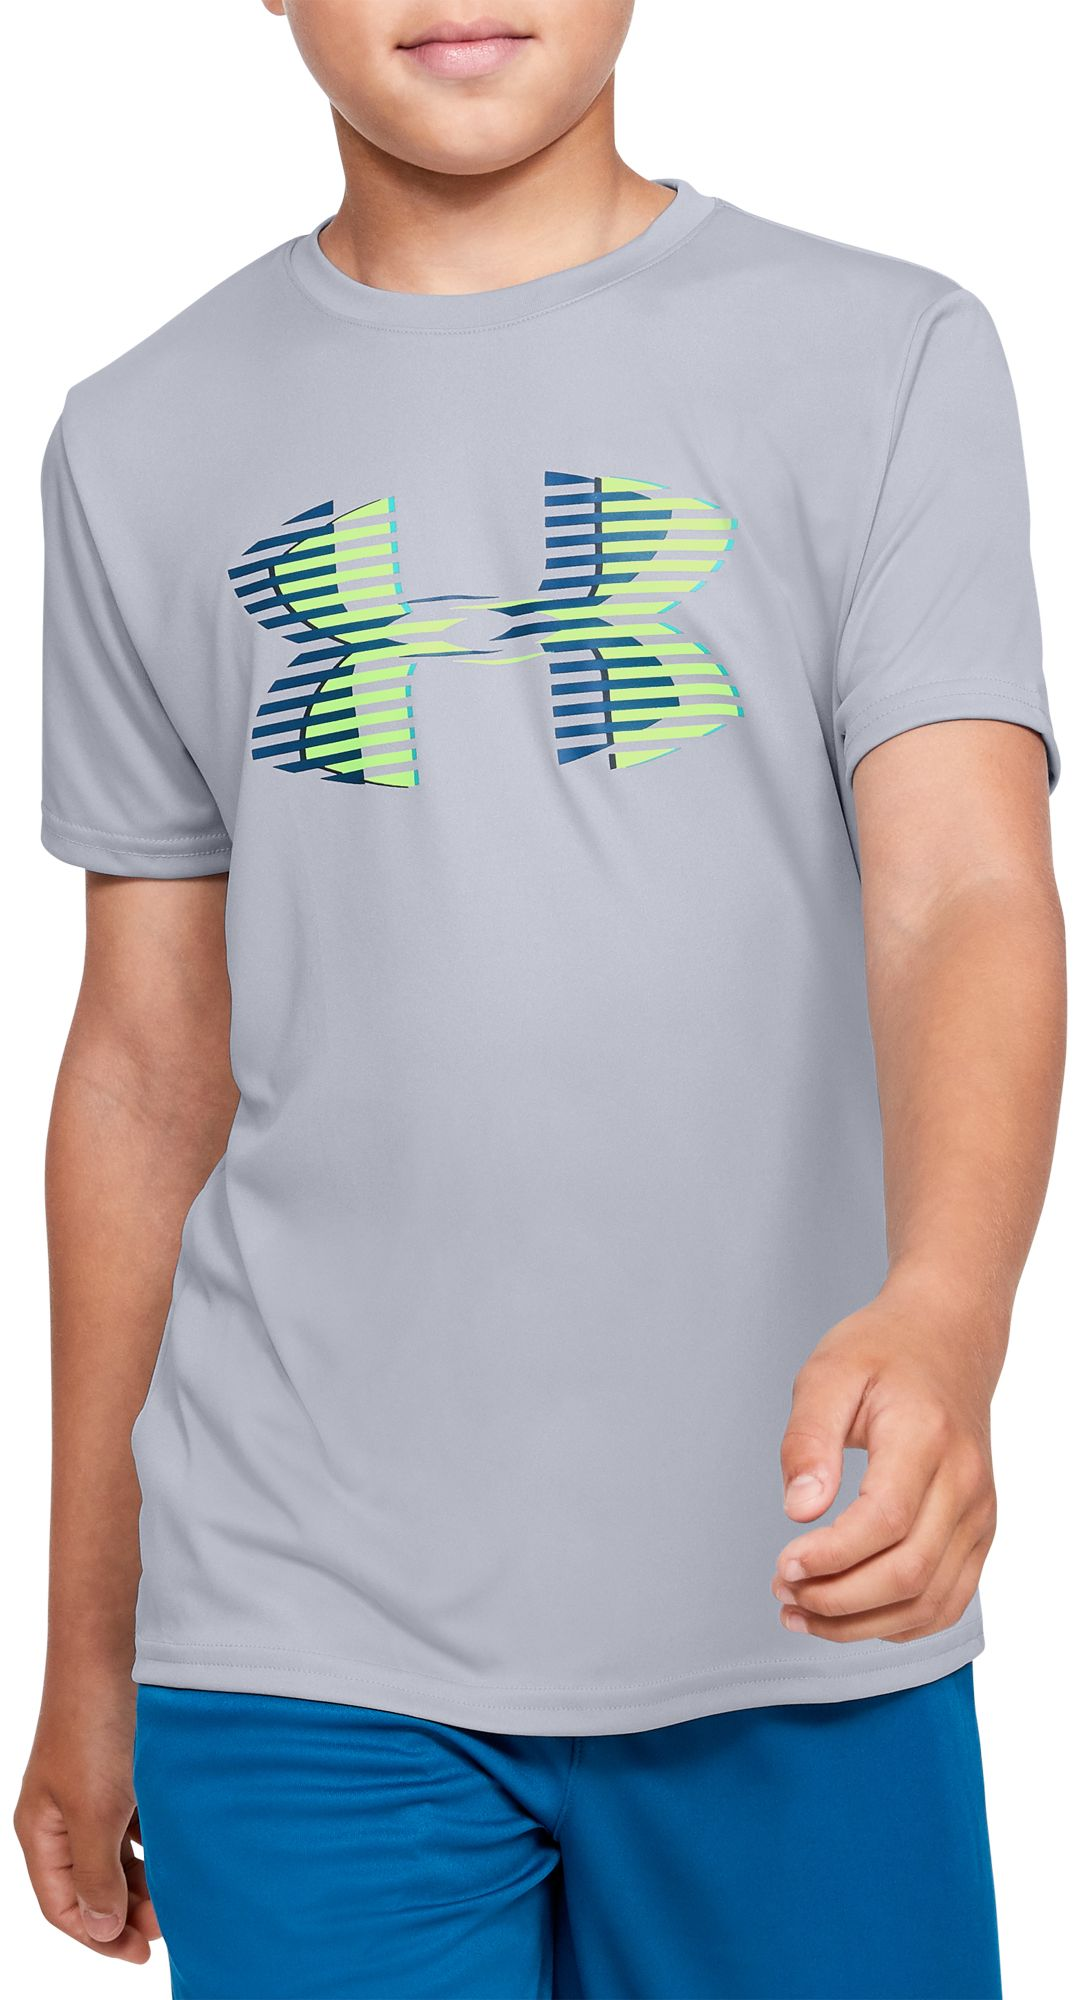 80cf9ed5 Under Armour Boys' Tech Big Logo Graphic Solid T-Shirt | DICK'S ...